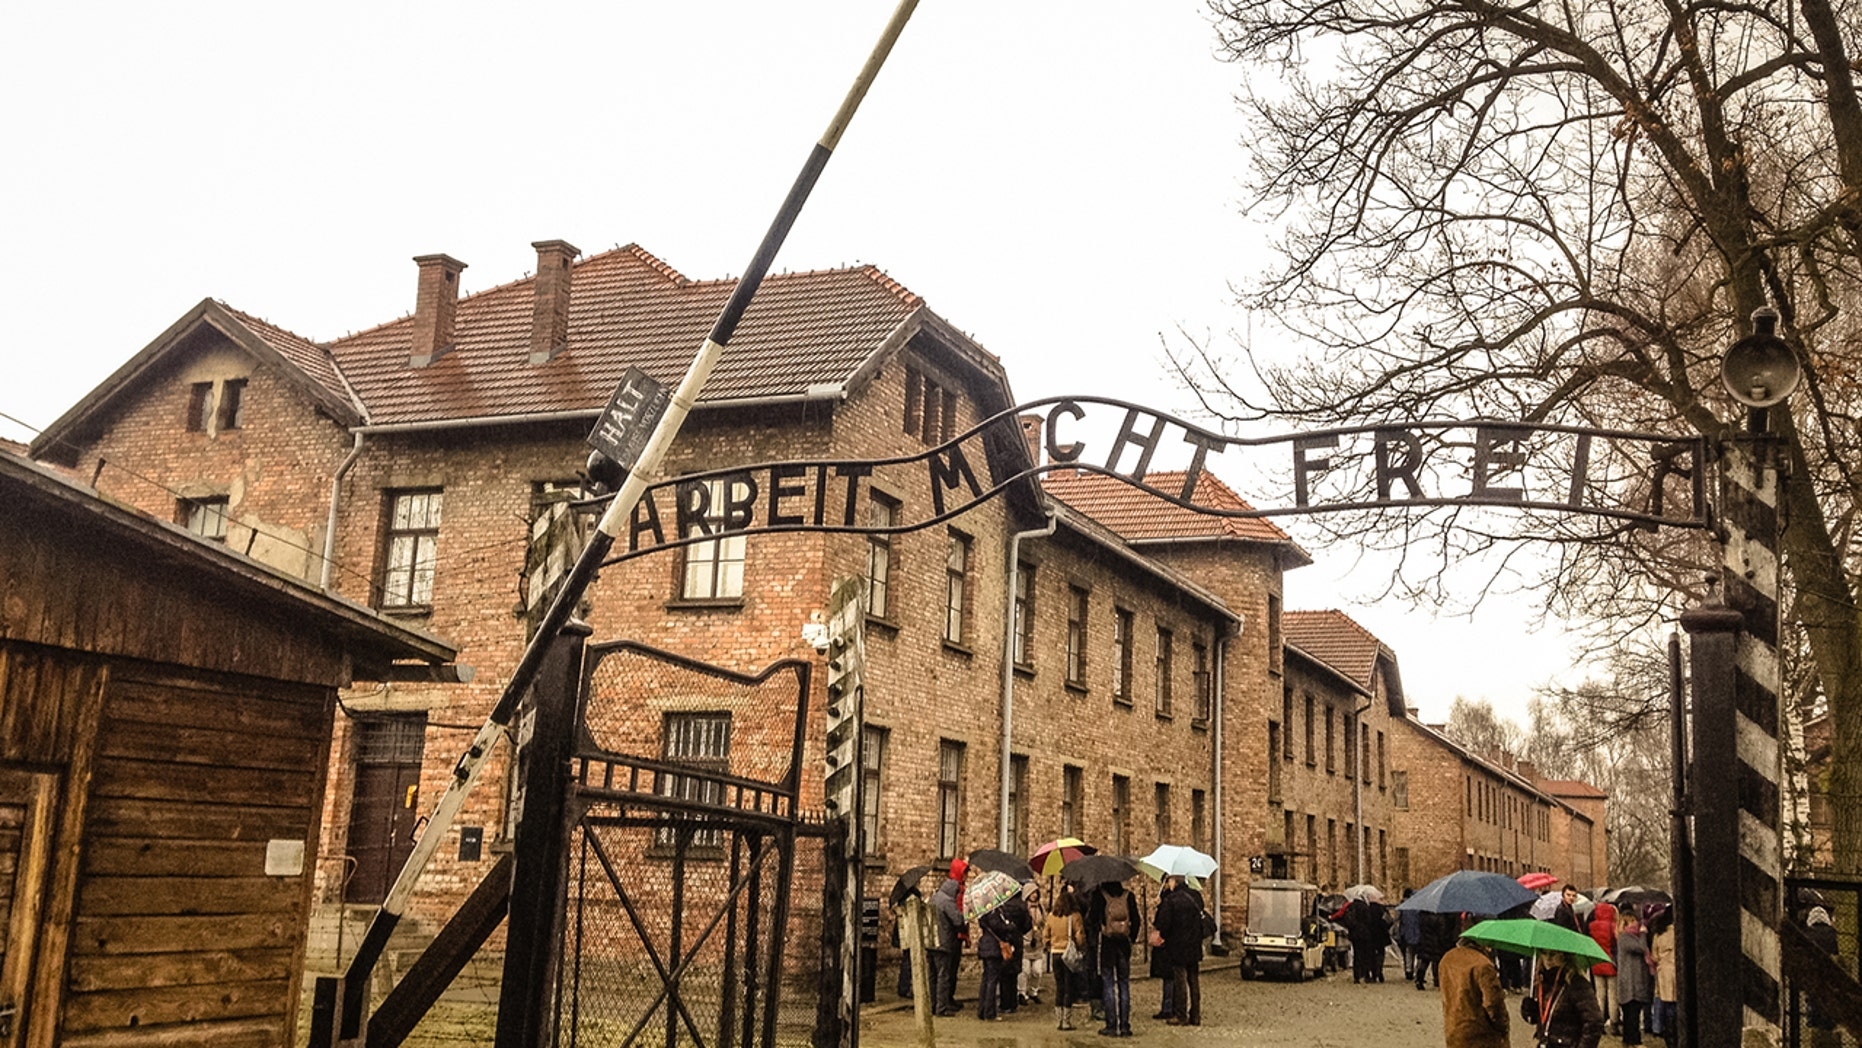 The Auschwitz Memorial on Wednesday called on tourists to pay attention to where they are when visiting the historic site after people apparently created Photo-ops along their railway line.